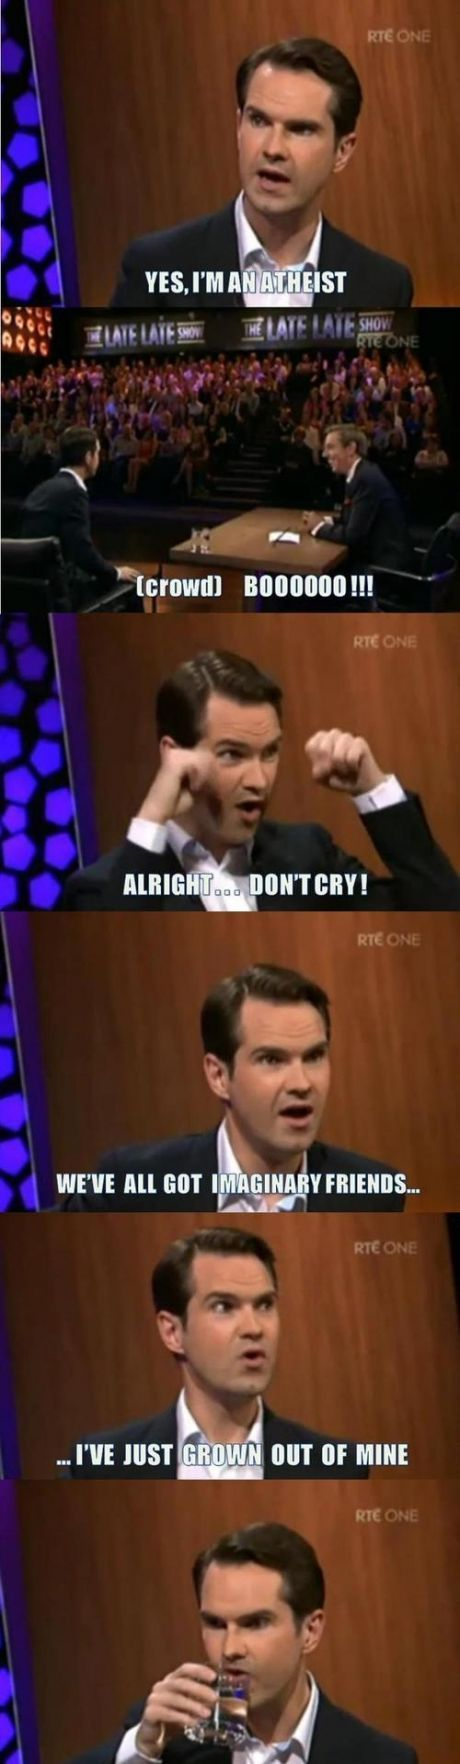 You know Jimmy Carr is gonna lay one down on the audience...